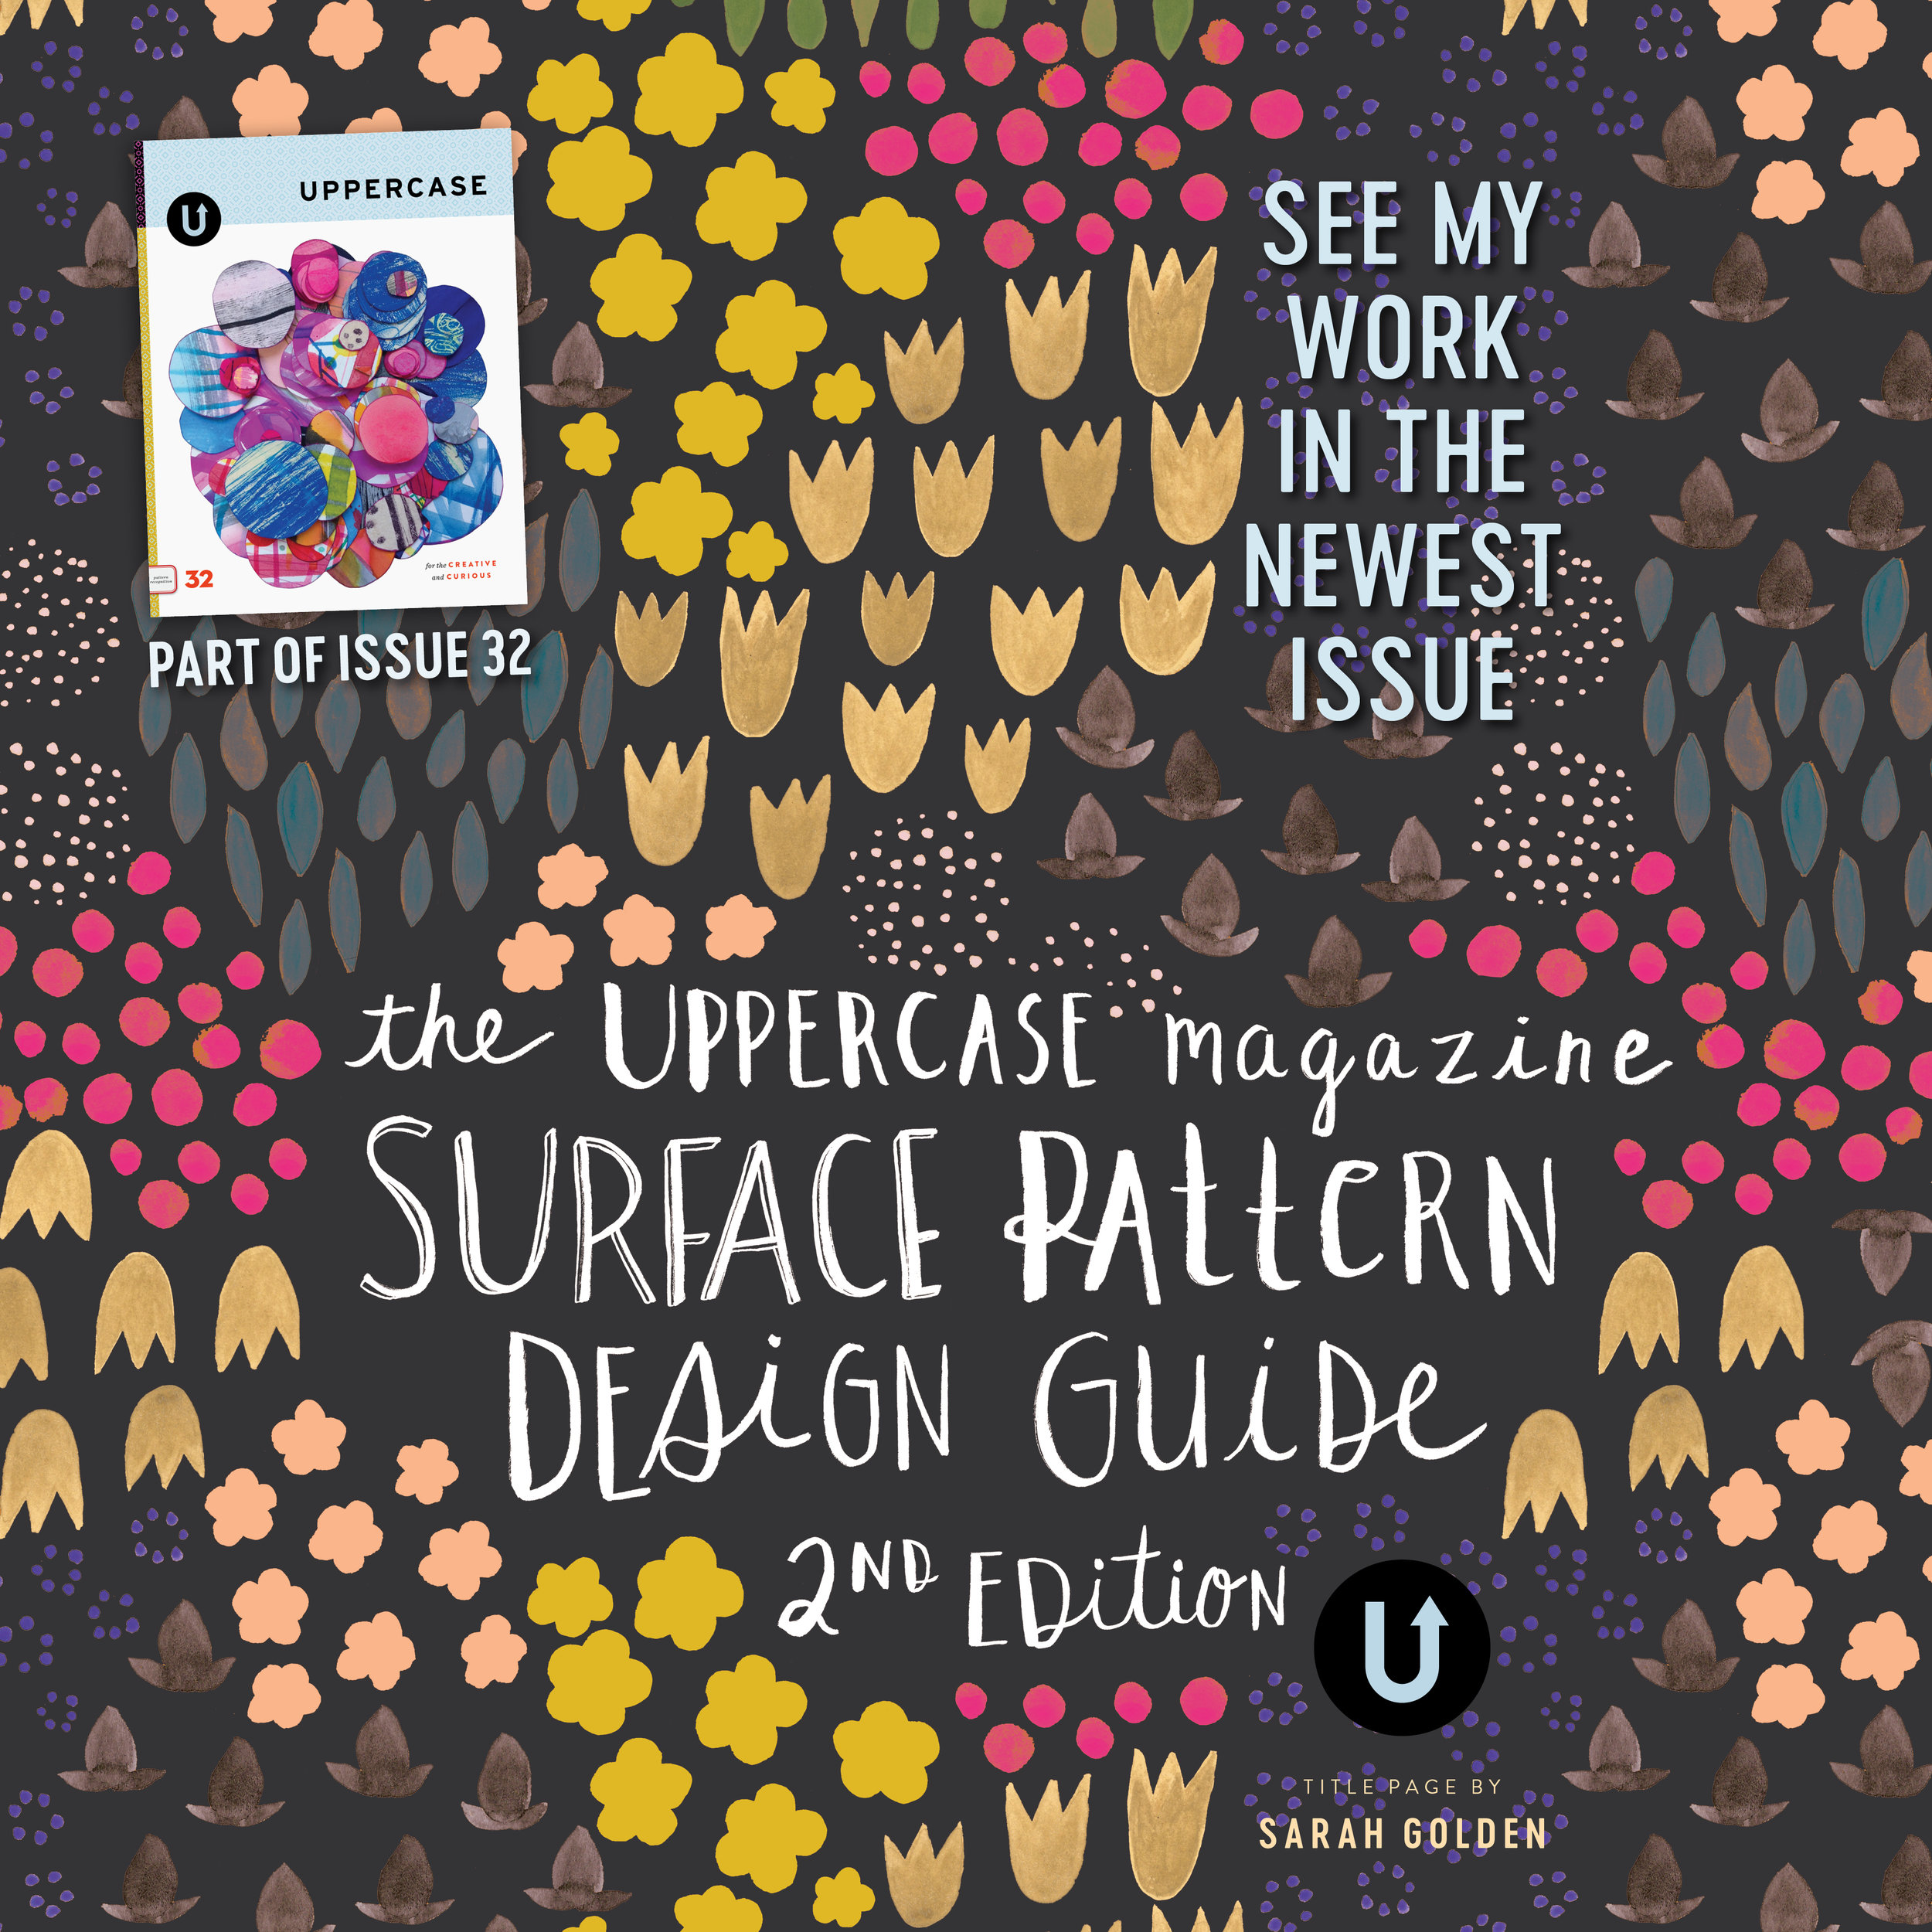 Chris Olson is featured in UPPERCASE Magazine Surface Pattern Design Guide.